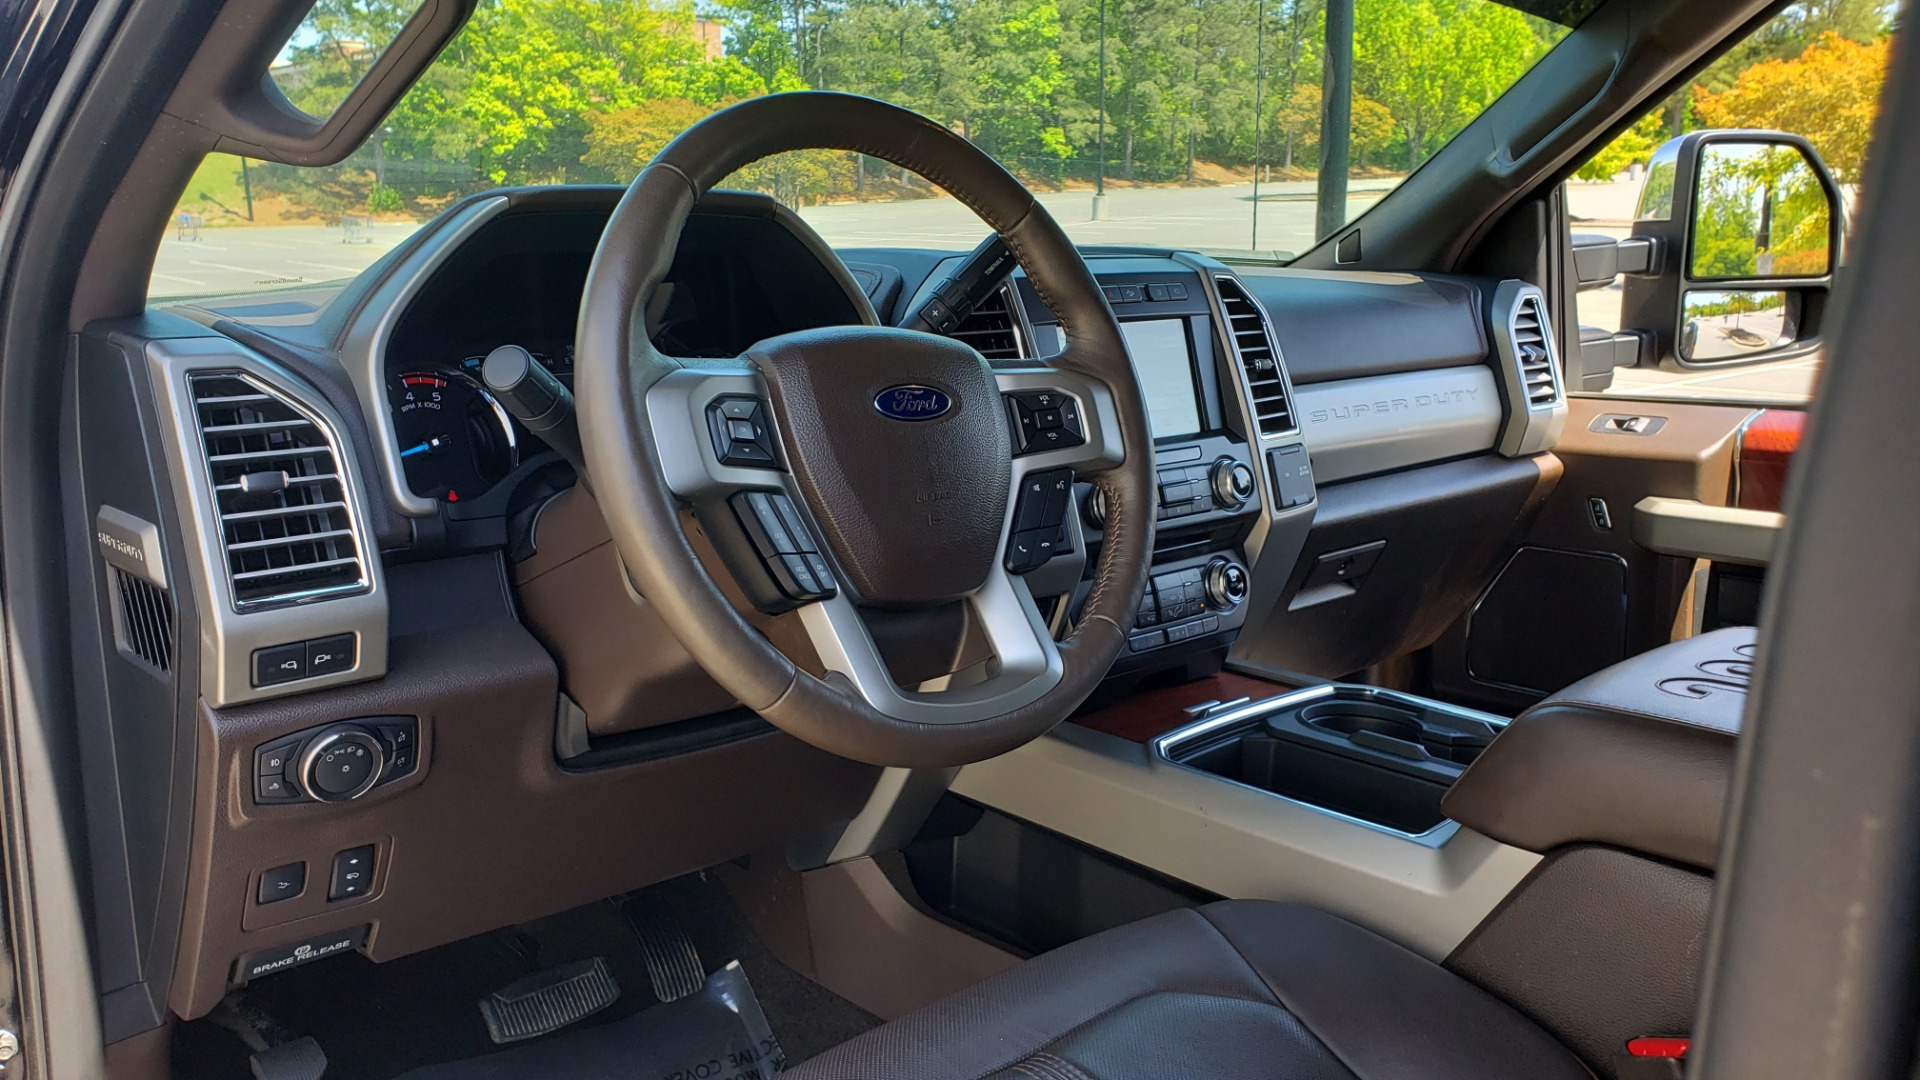 Used 2017 Ford SUPER DUTY F-450 DRW KING RANCH 4X4 / 176IN WB / 6.7L POWER-STROKE / LOADED for sale Sold at Formula Imports in Charlotte NC 28227 41